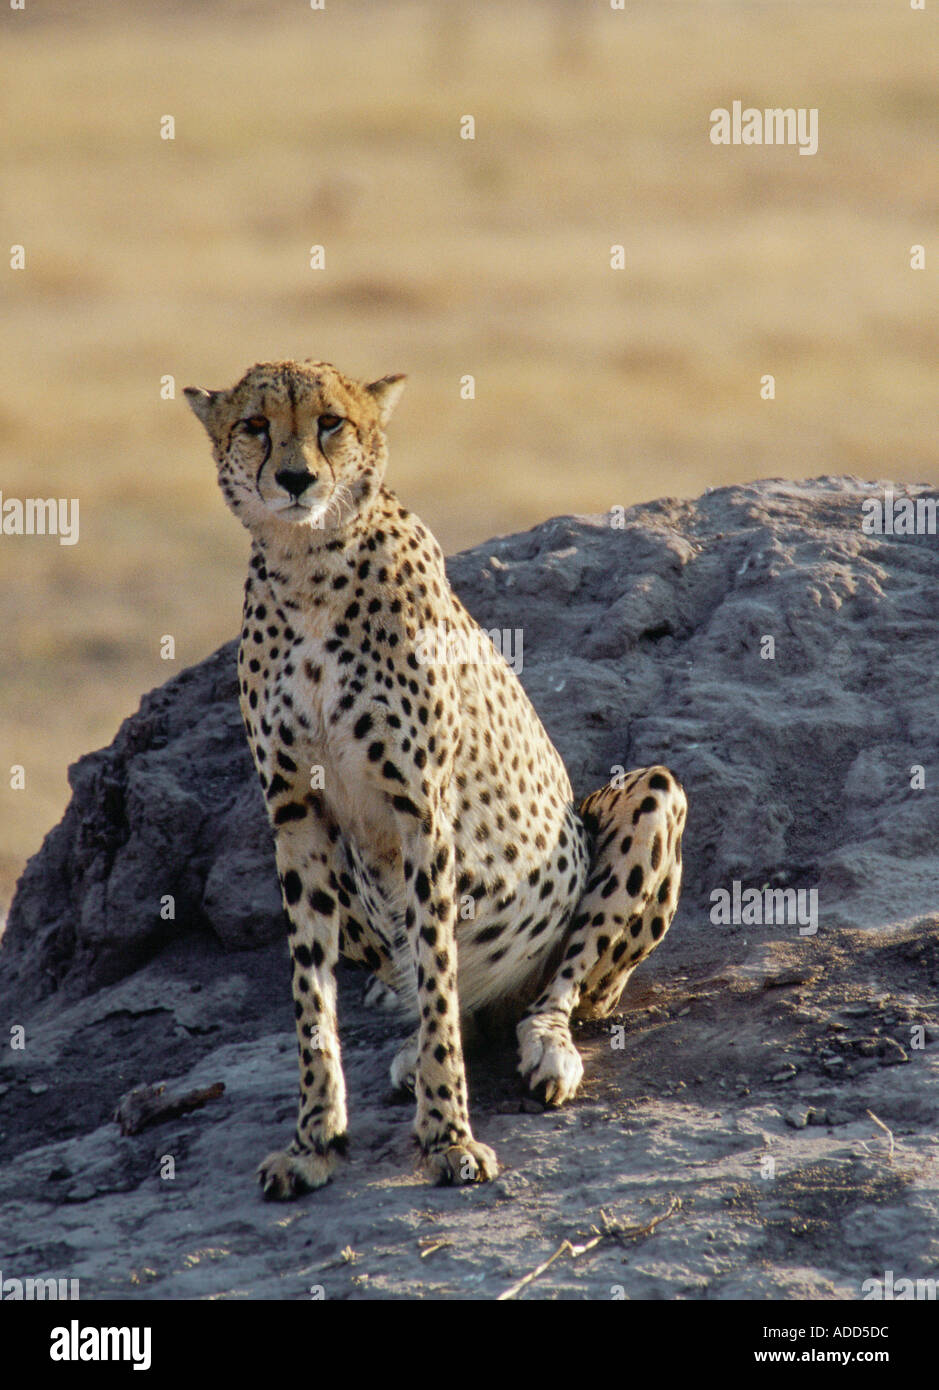 Cheetah using an old termite mound to watch for approaching prey in Moremi National Park Botswana Africa - Stock Image